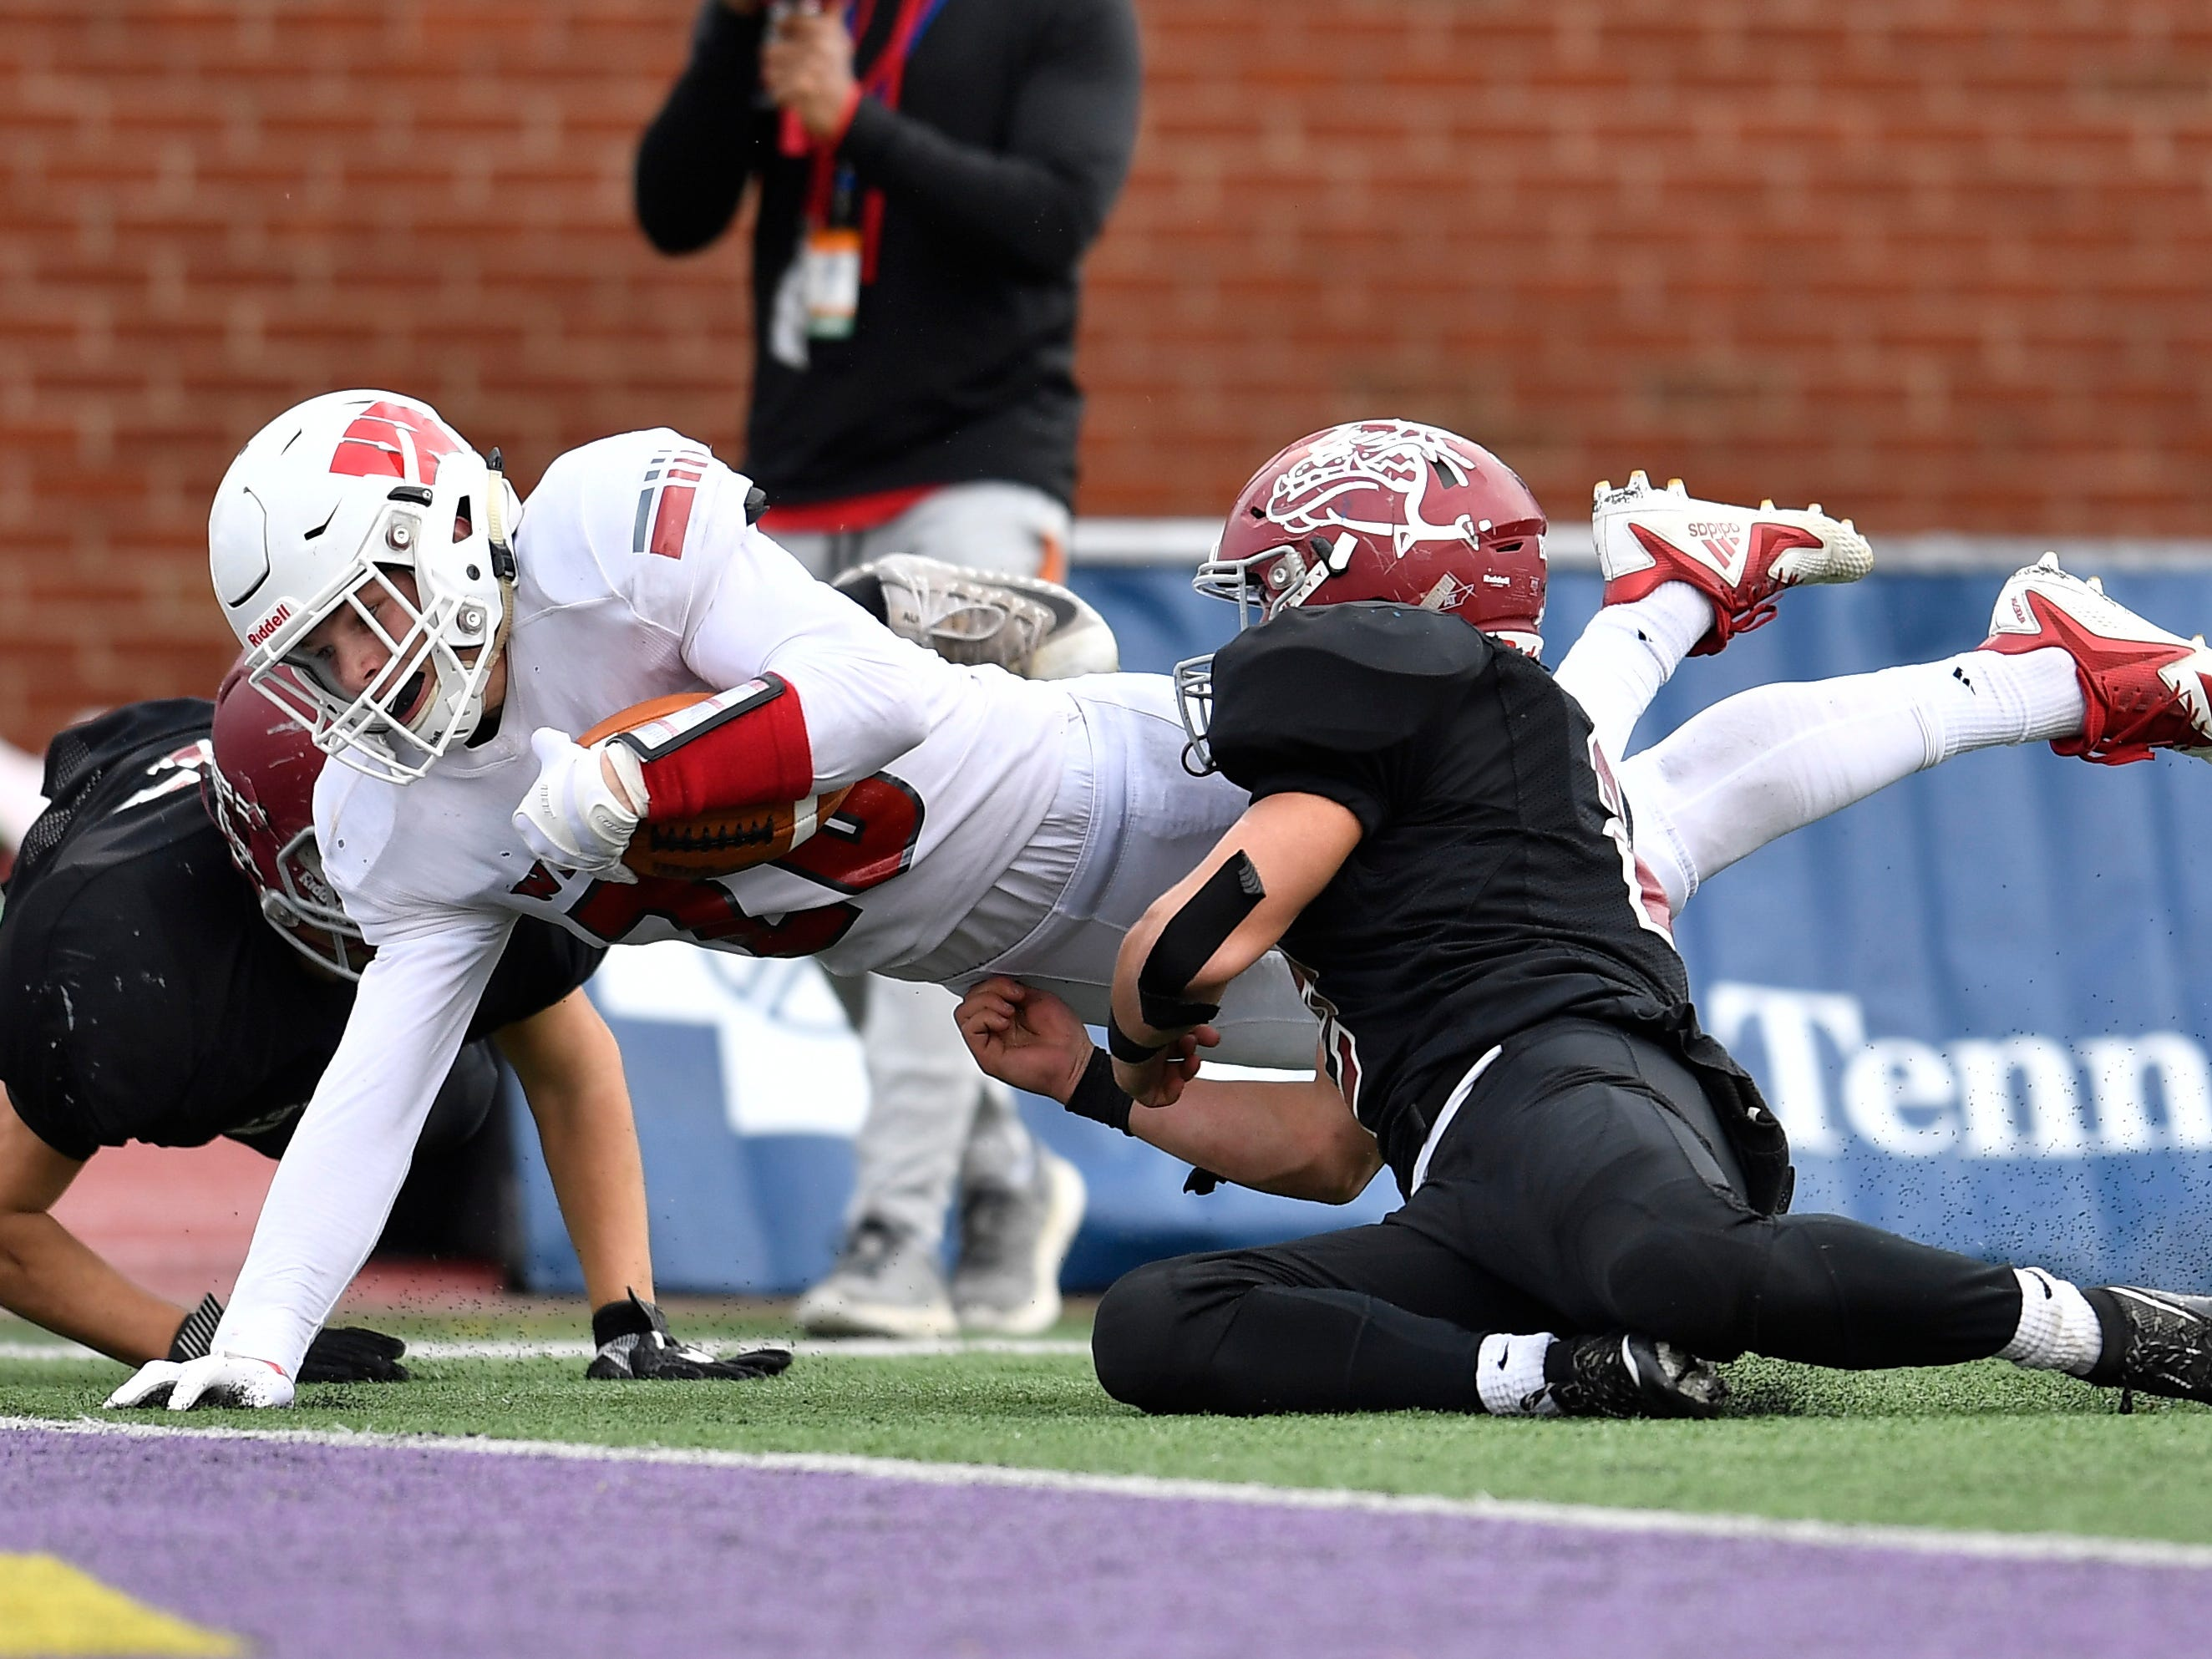 Whitwell wide receiver Tanner Stewart (20) dives in for a touchdown in the fourth quarter at the Class I-A BlueCross Bowl state championship at Tennessee Tech's Tucker Stadium in Cookeville, Tenn., on Saturday, Dec. 1, 2018.